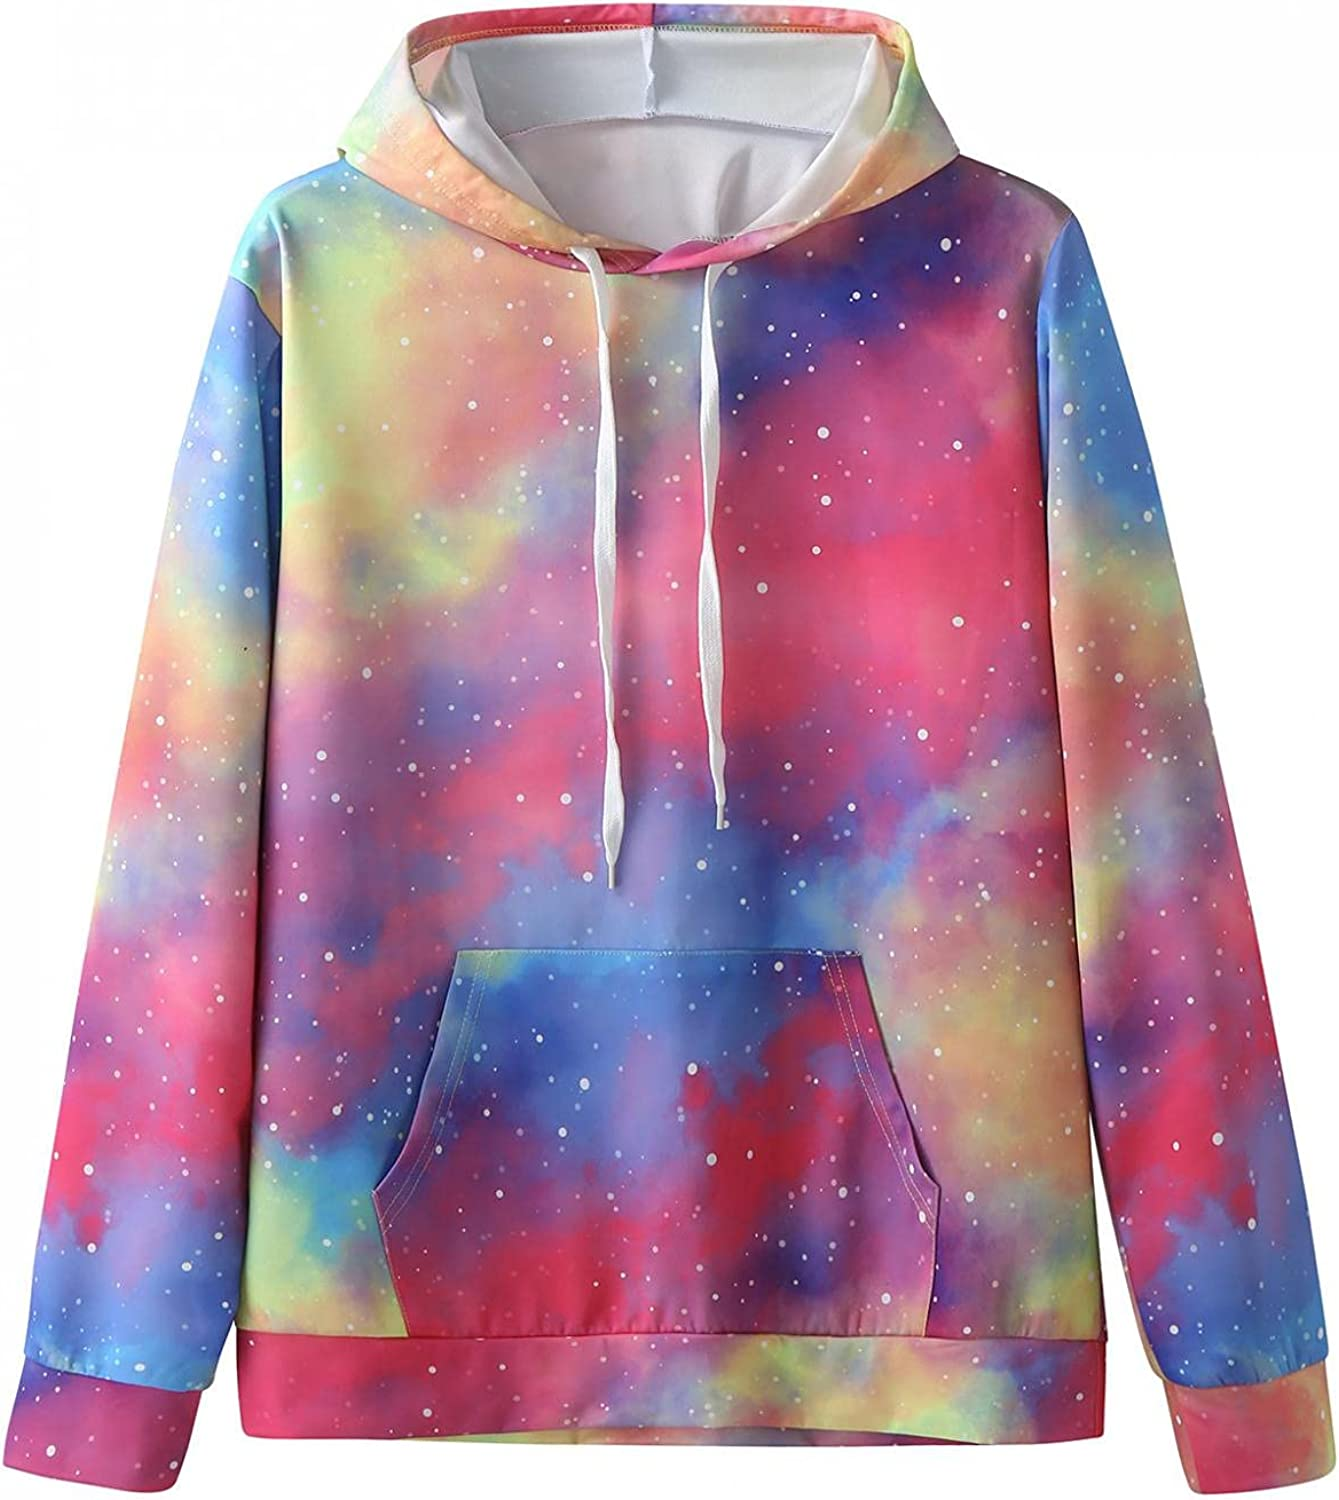 Qsctys Men's Fashion Hoodies Long Sleeve Tie Dye 3D Print Hooded Sweatshirts Casual Pullover Lightweight Big and Tall